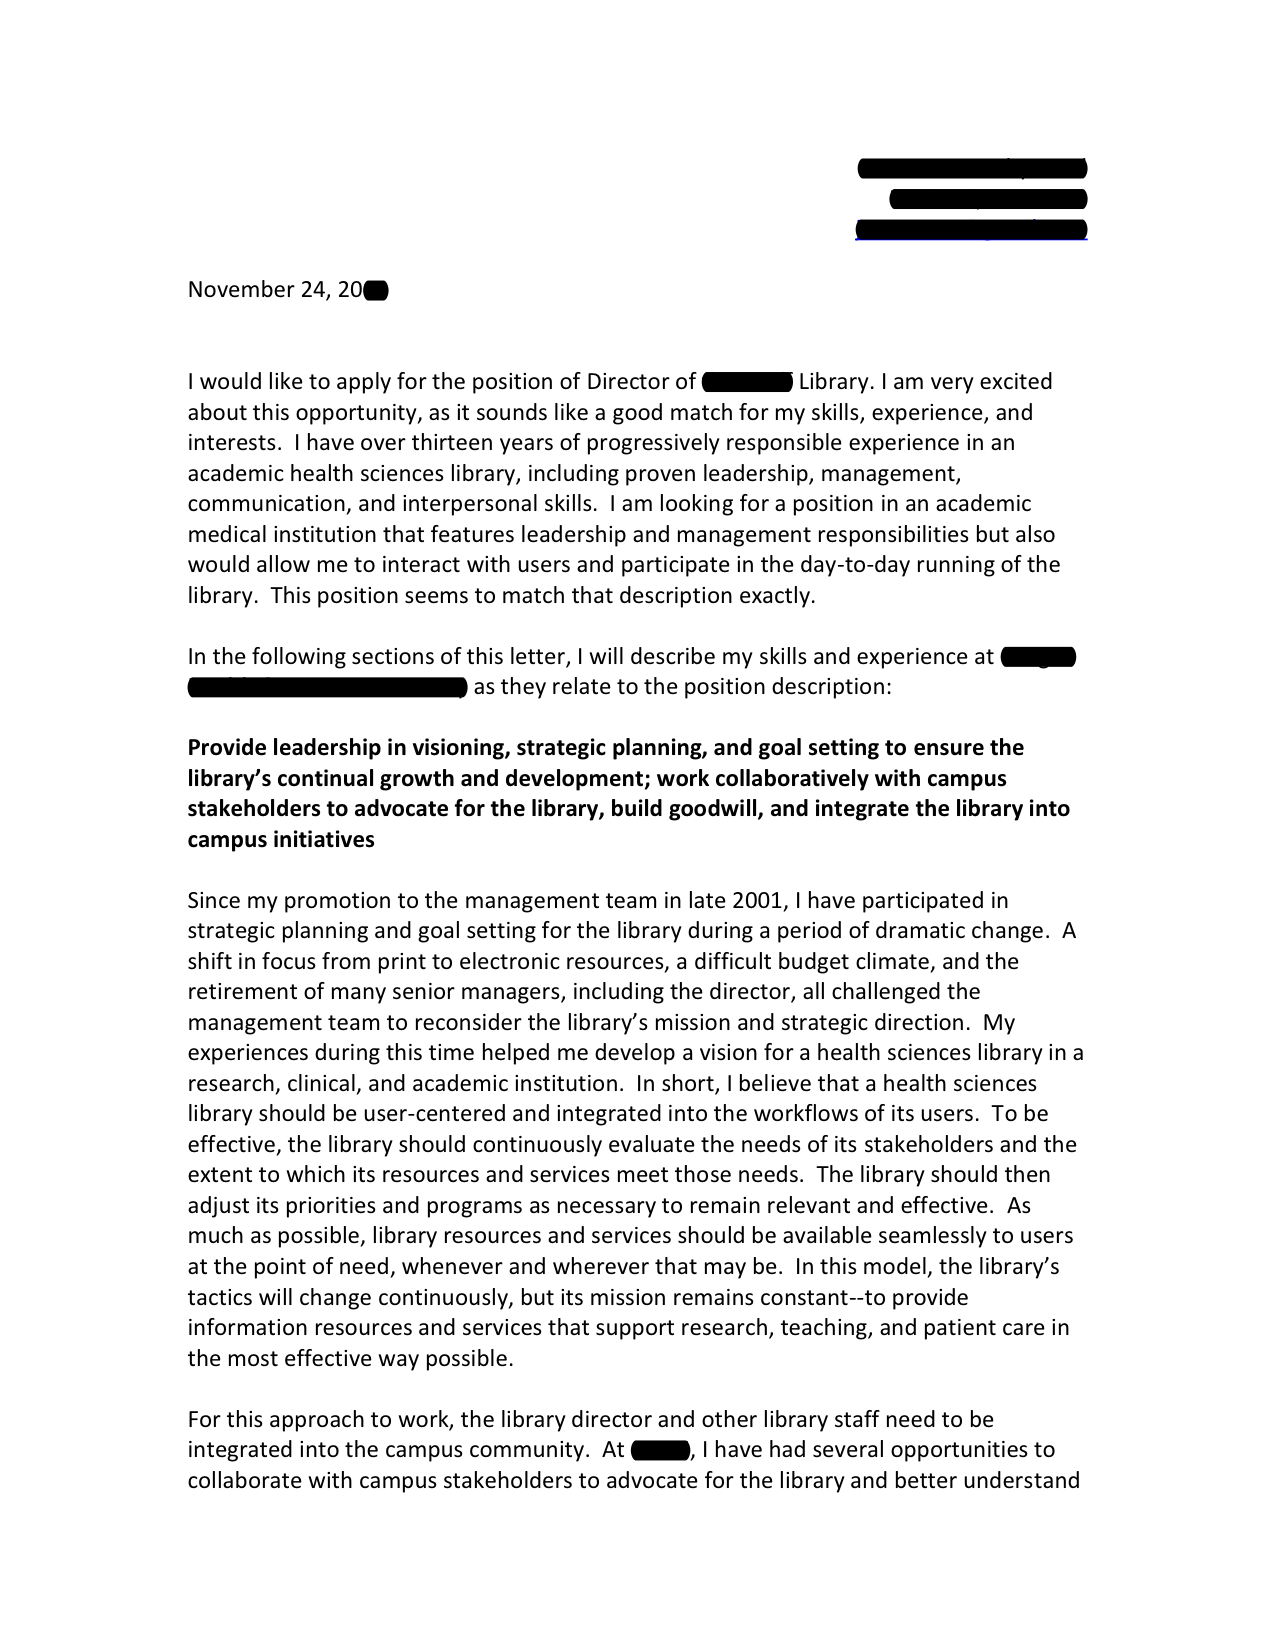 cover letter examples science lab – Length of Cover Letters